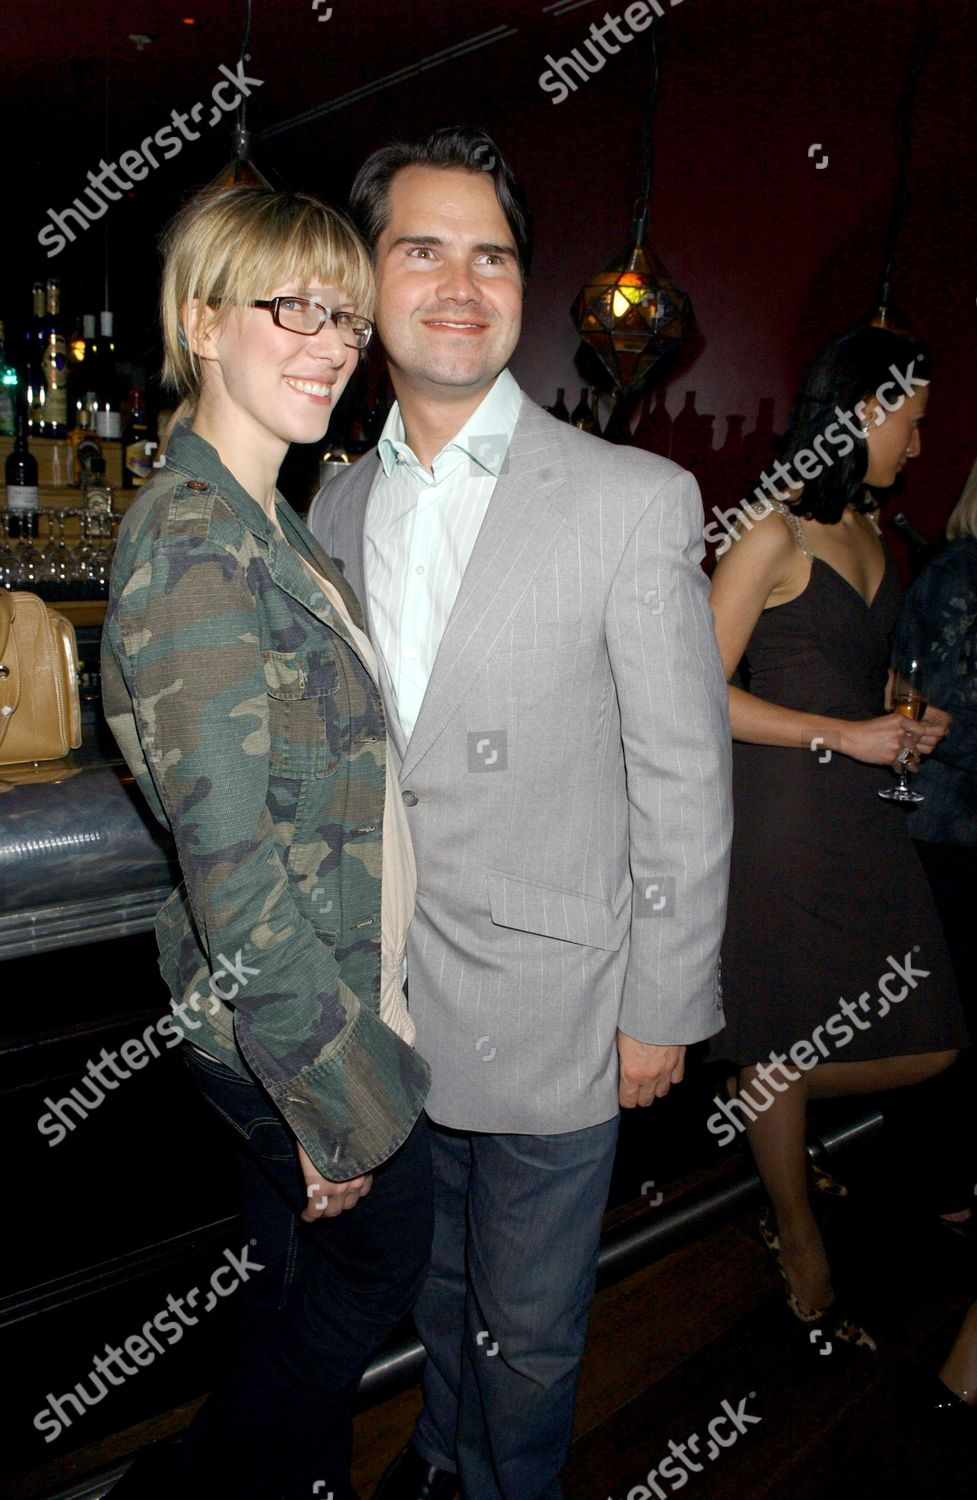 Karoline Copping Jimmy Carr Editorial Stock Photo Stock Image Shutterstock She is mostly known karoline copping and her partner jimmy carr met at a television interview during the auditions in. https www shutterstock com editorial image editorial paul mckennas i can make you thin book launch party at the soho hotel london britain 08 mar 2005 515490q